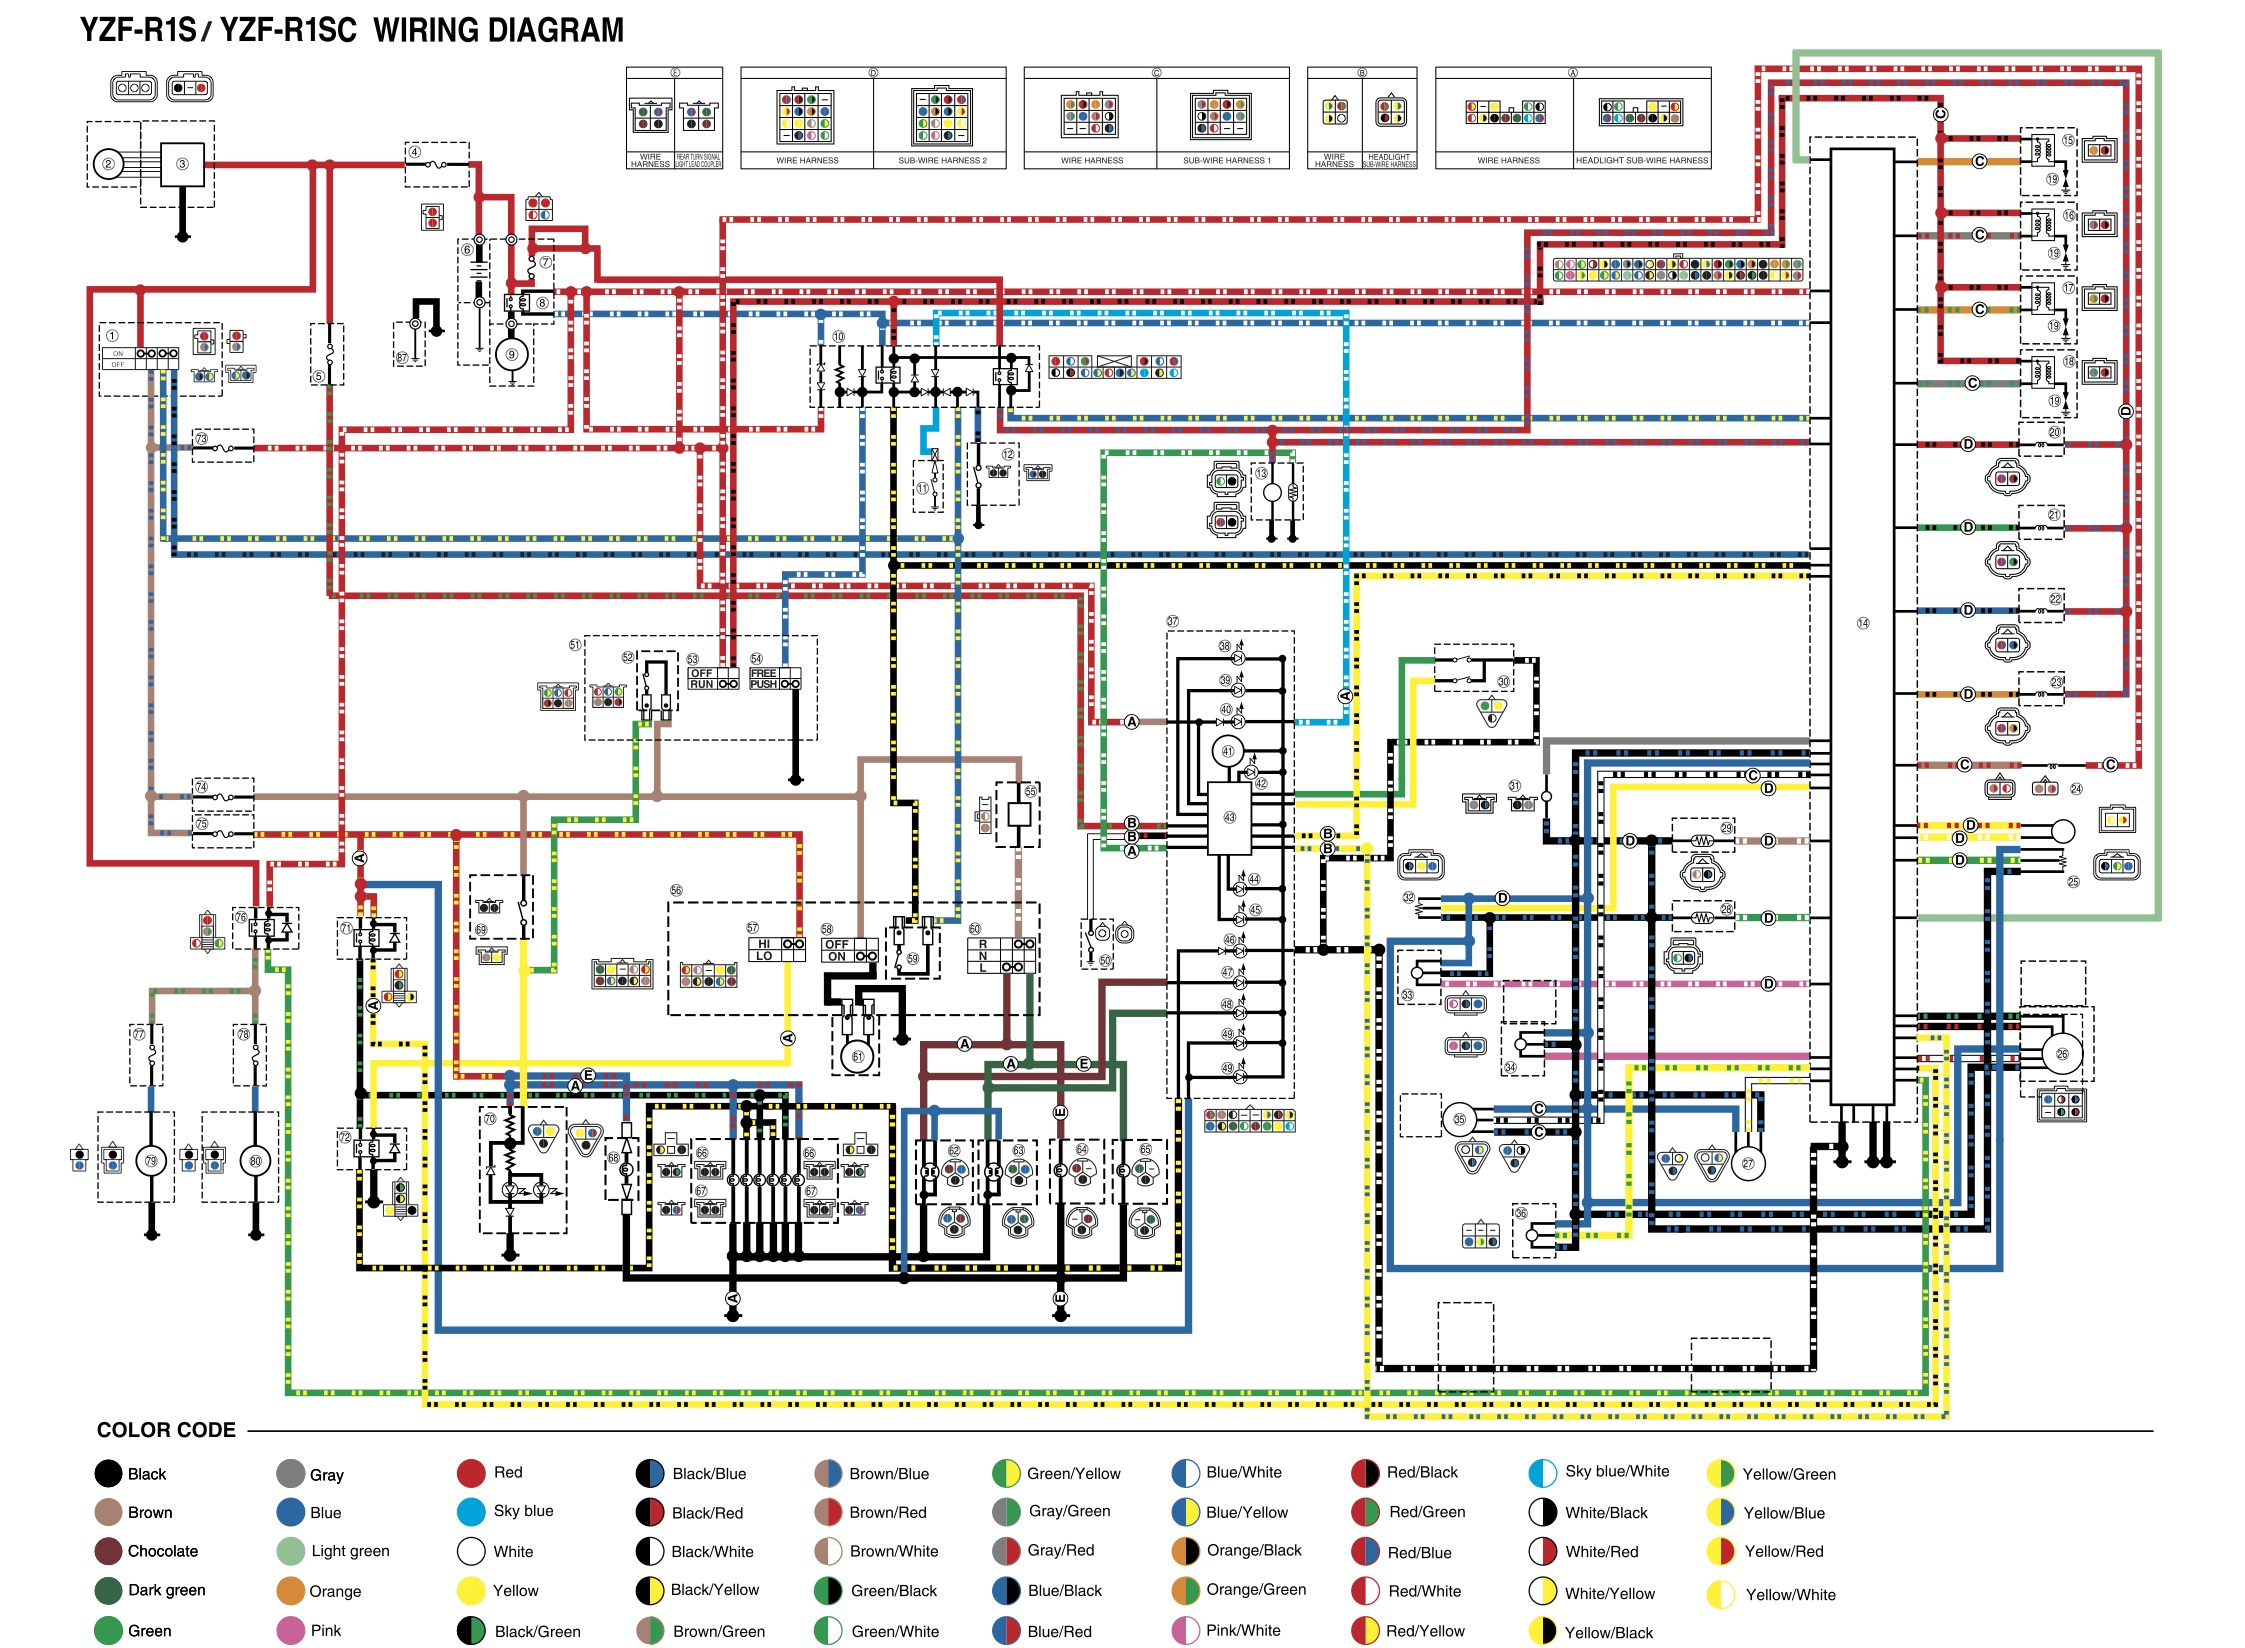 04R1_wiring_diagram r1 wiring help 2003 yamaha r6 headlight wiring diagram at reclaimingppi.co